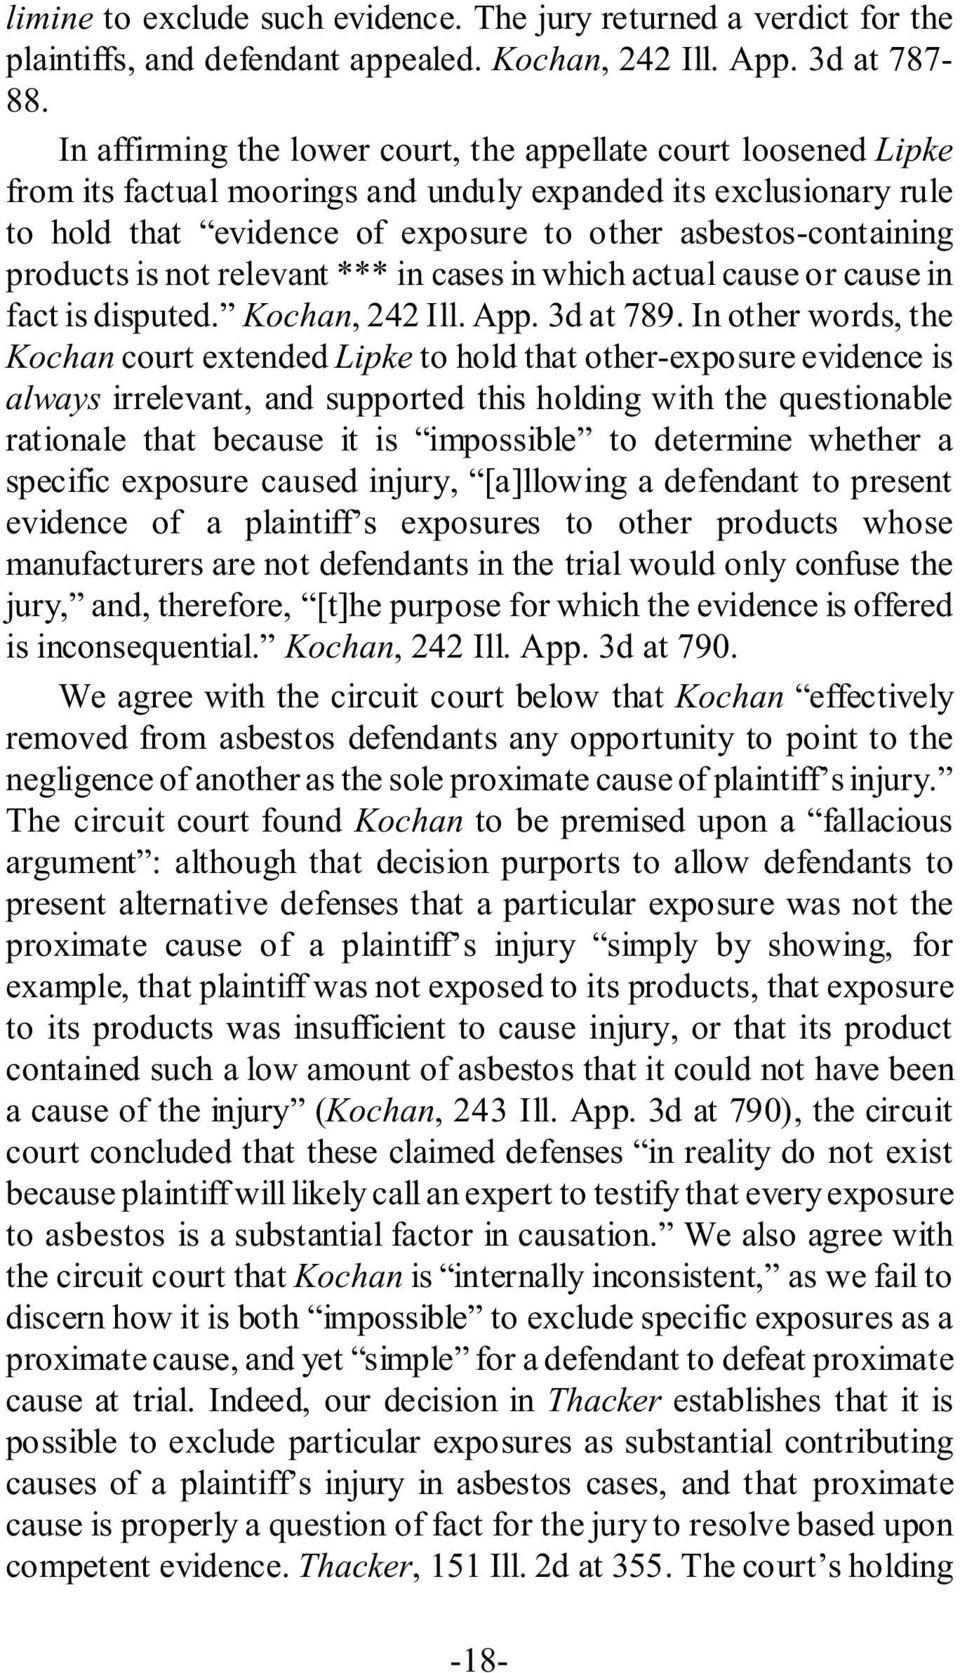 products is not relevant *** in cases in which actual cause or cause in fact is disputed. Kochan, 242 Ill. App. 3d at 789.